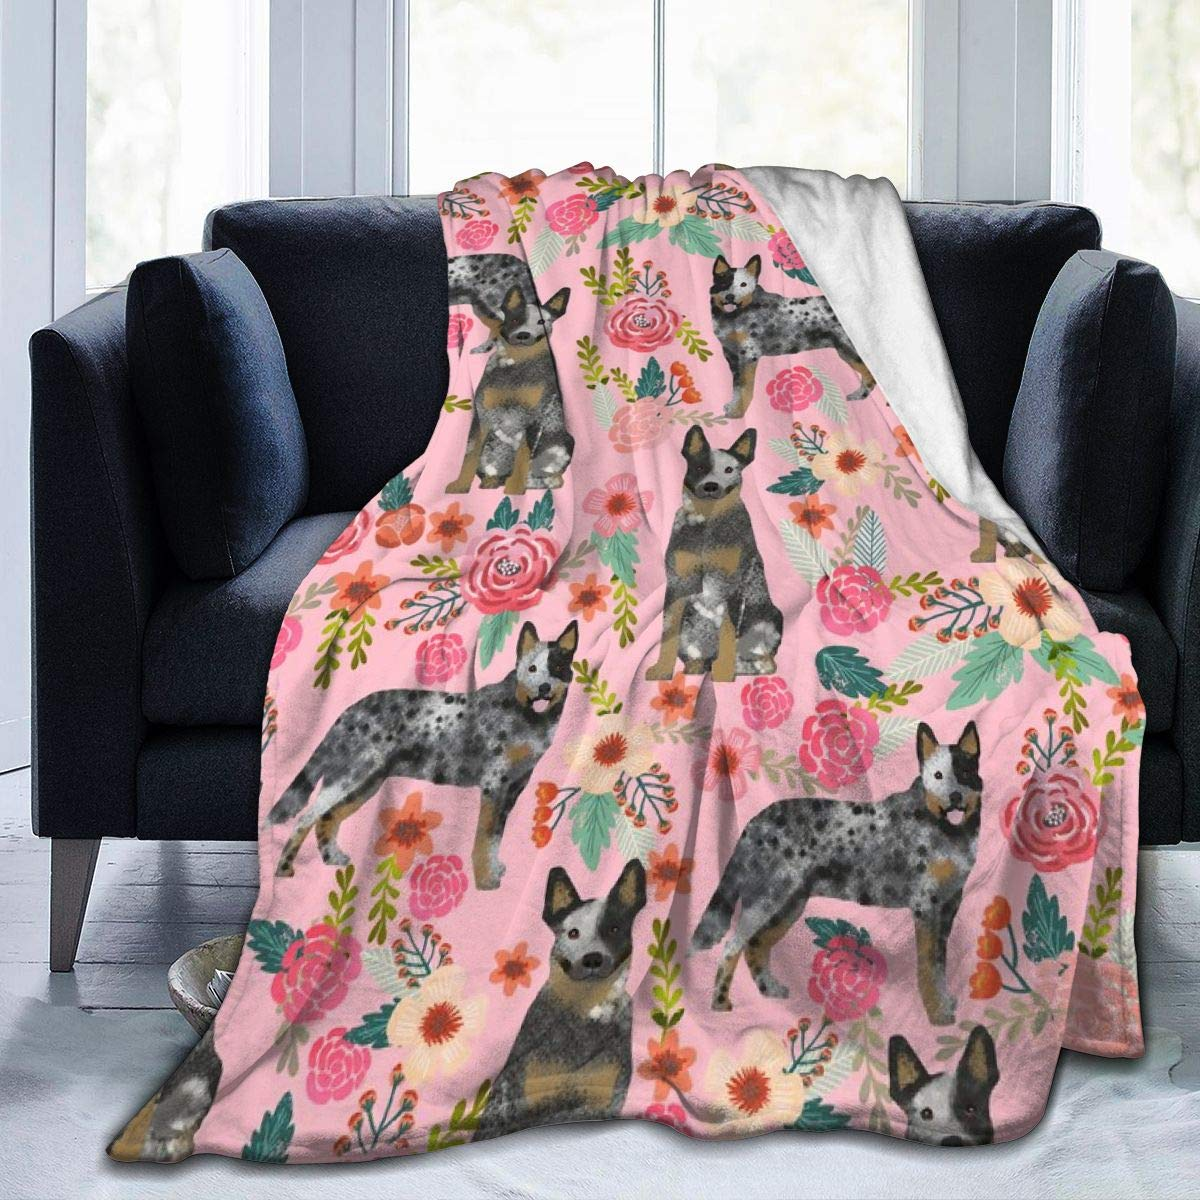 Beauty-Design Australian Cattle Dog Florals Pink Fleece Blanket Soft Warm Throws Blankets for Sofa Home Bed Car Travel…